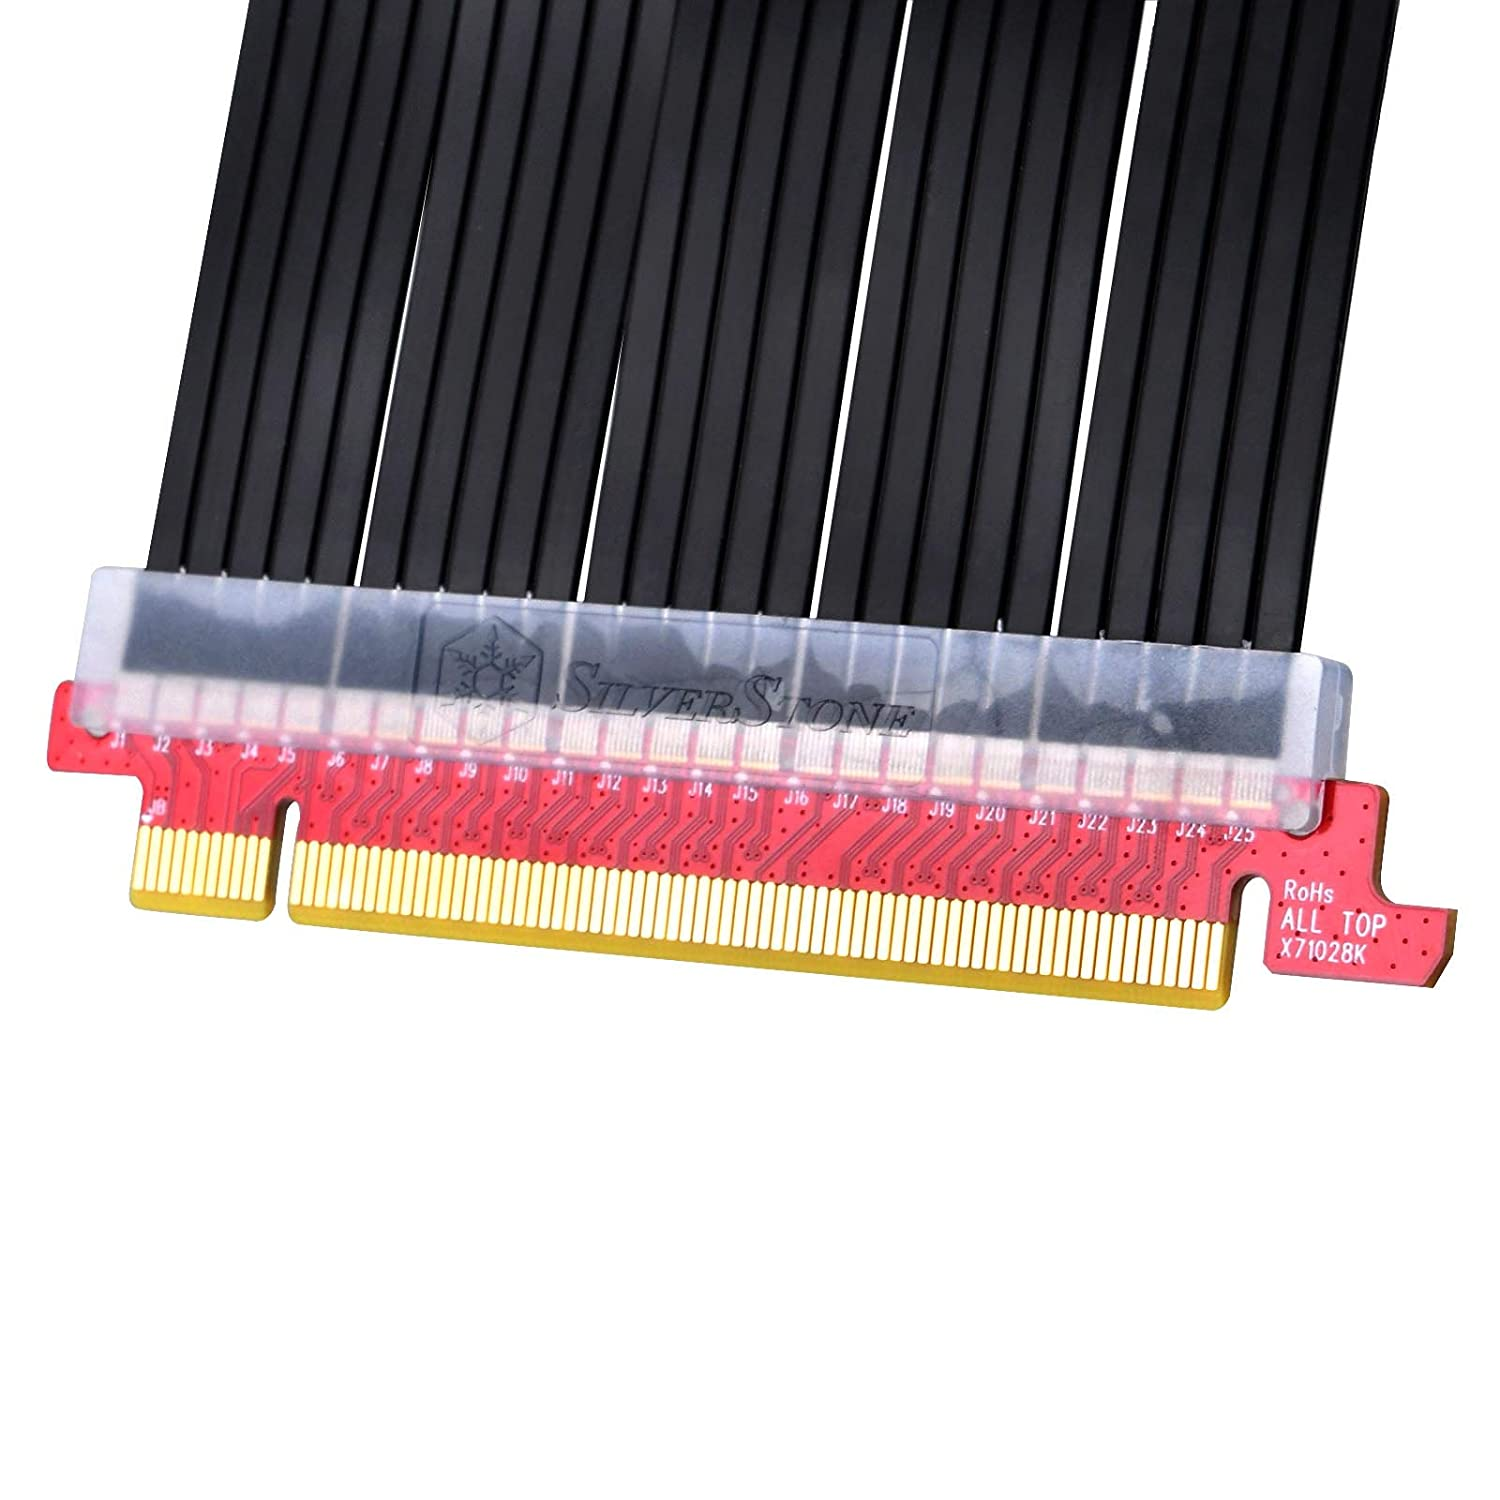 SST-RC04B-400 SilverStone Technology Universal PCI-Express x16 Gen 3.0 Flexible Riser Cable 220mm with EMI Shielding